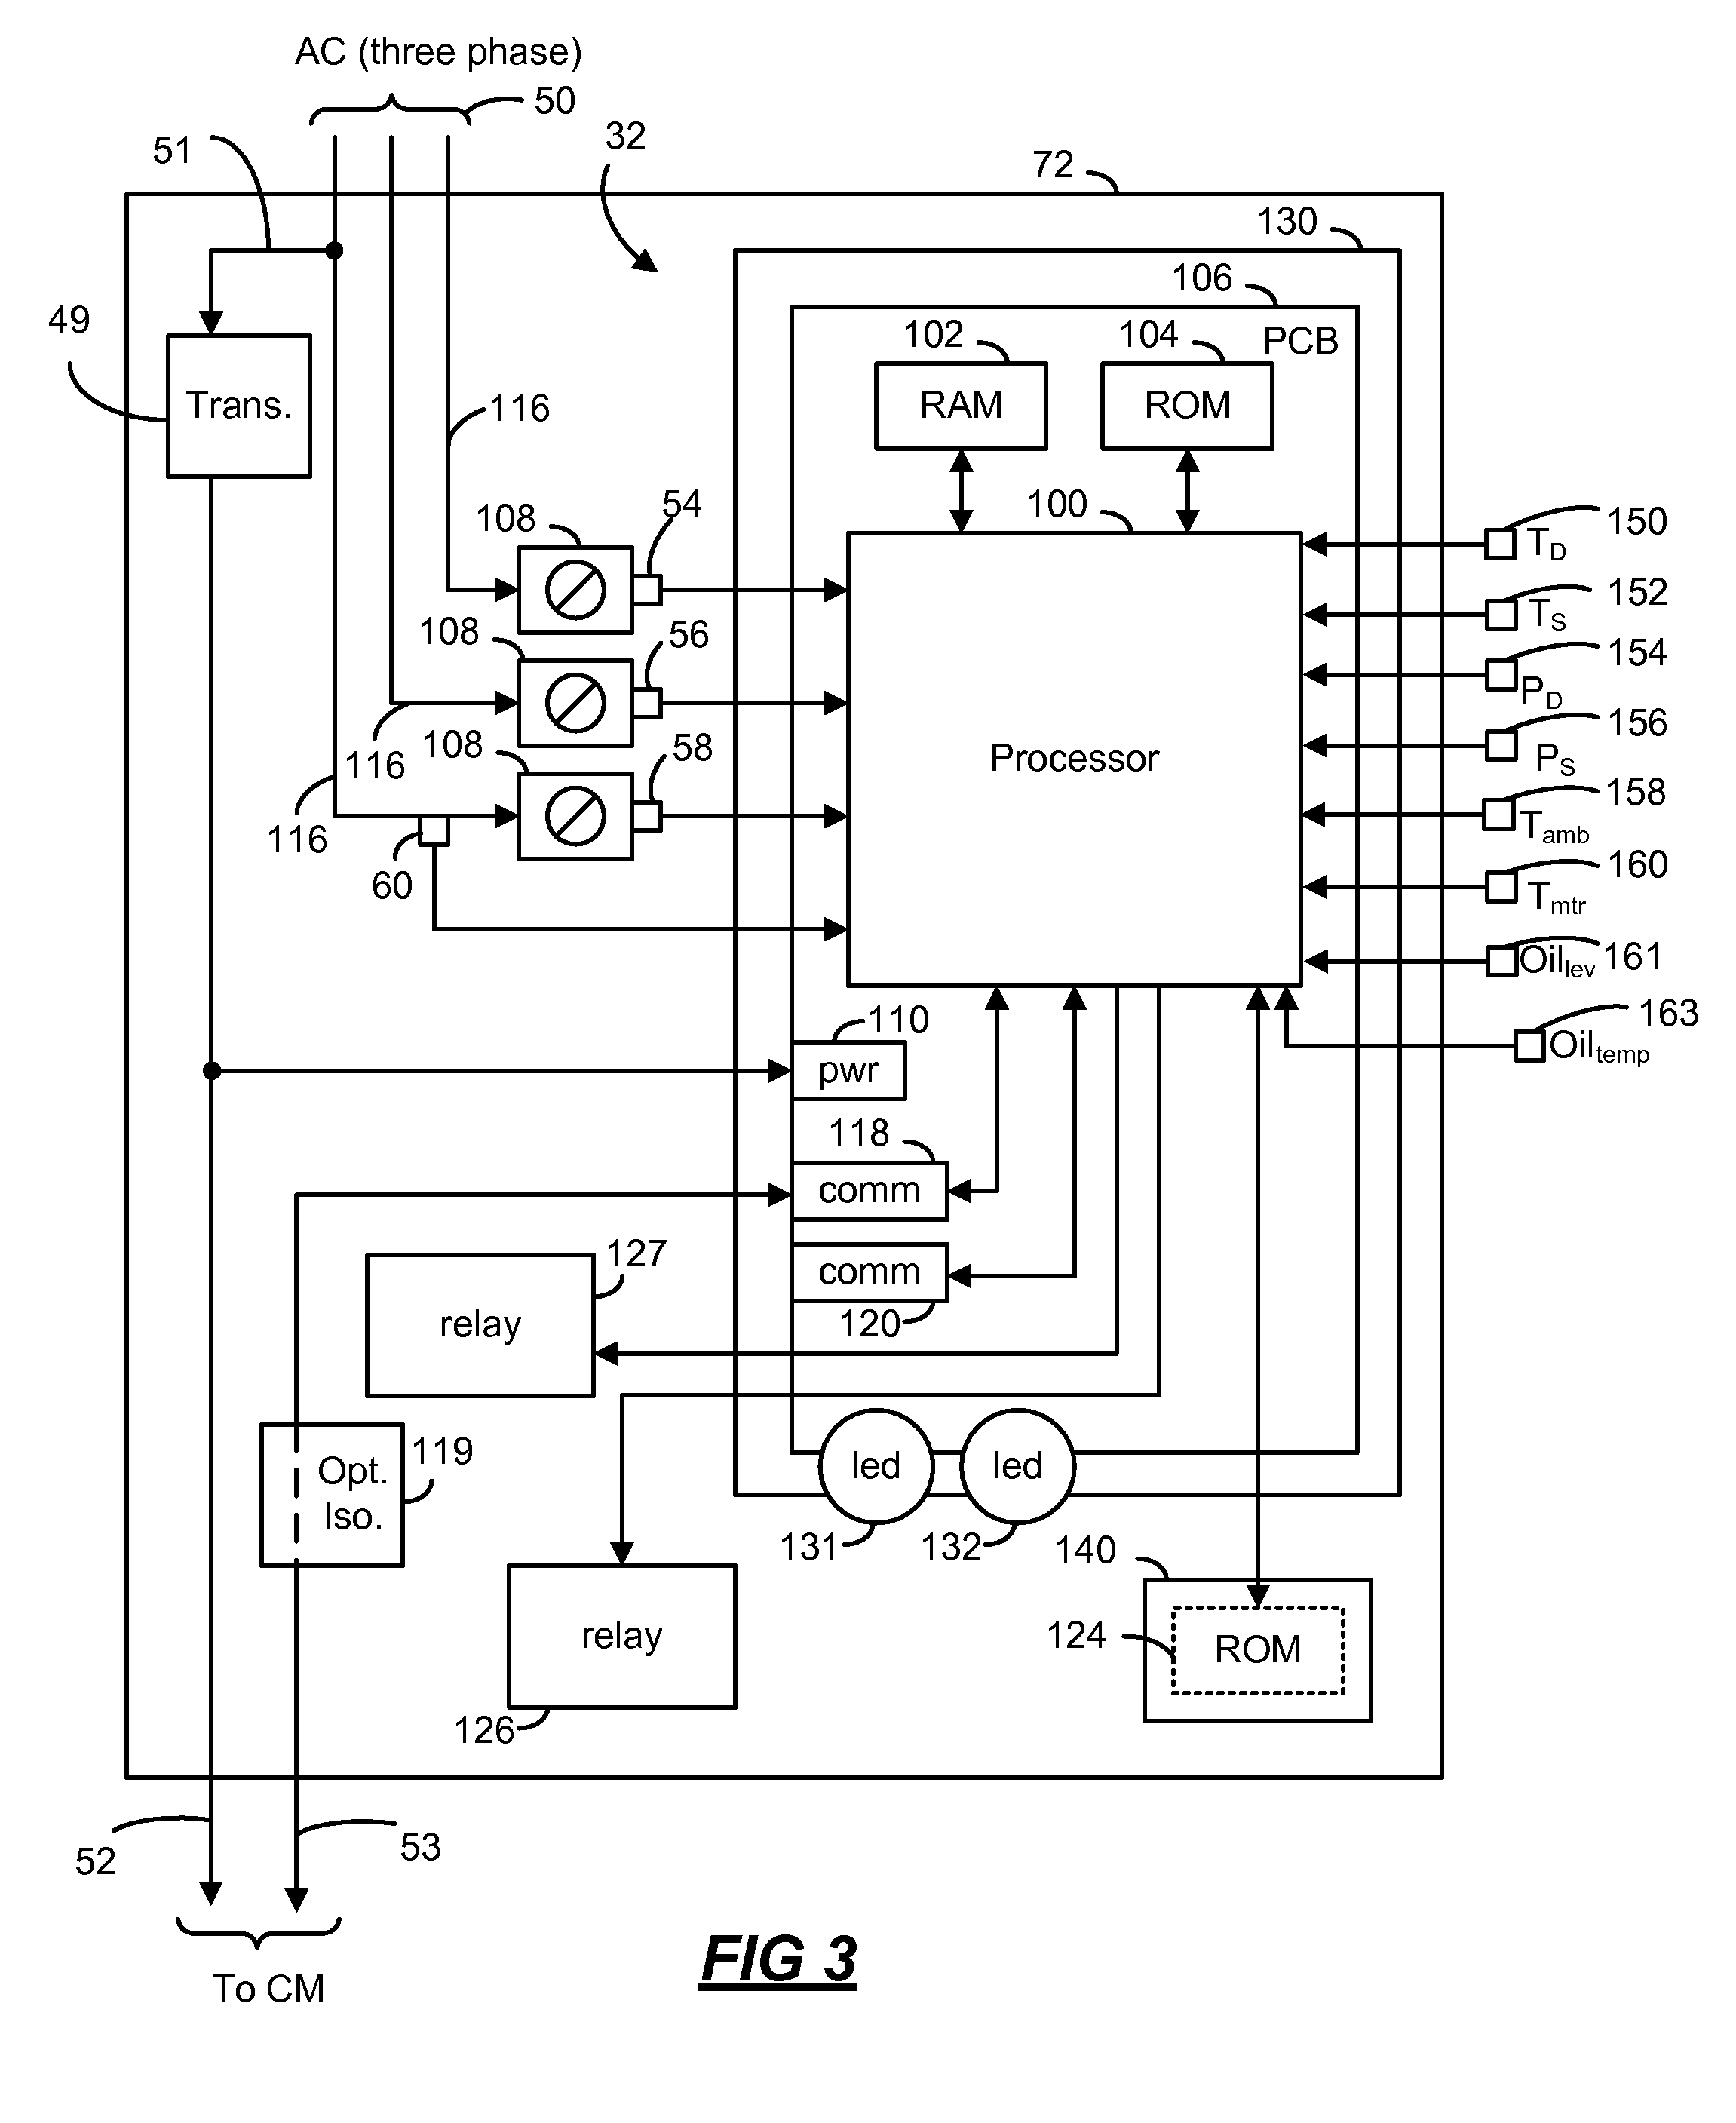 Trane Economizer Wiring Diagram 31 Images Electric Furnace Us08160827 20120417 D00003 Patent Us8160827 Compressor Sensor Module Google Patents At Cita